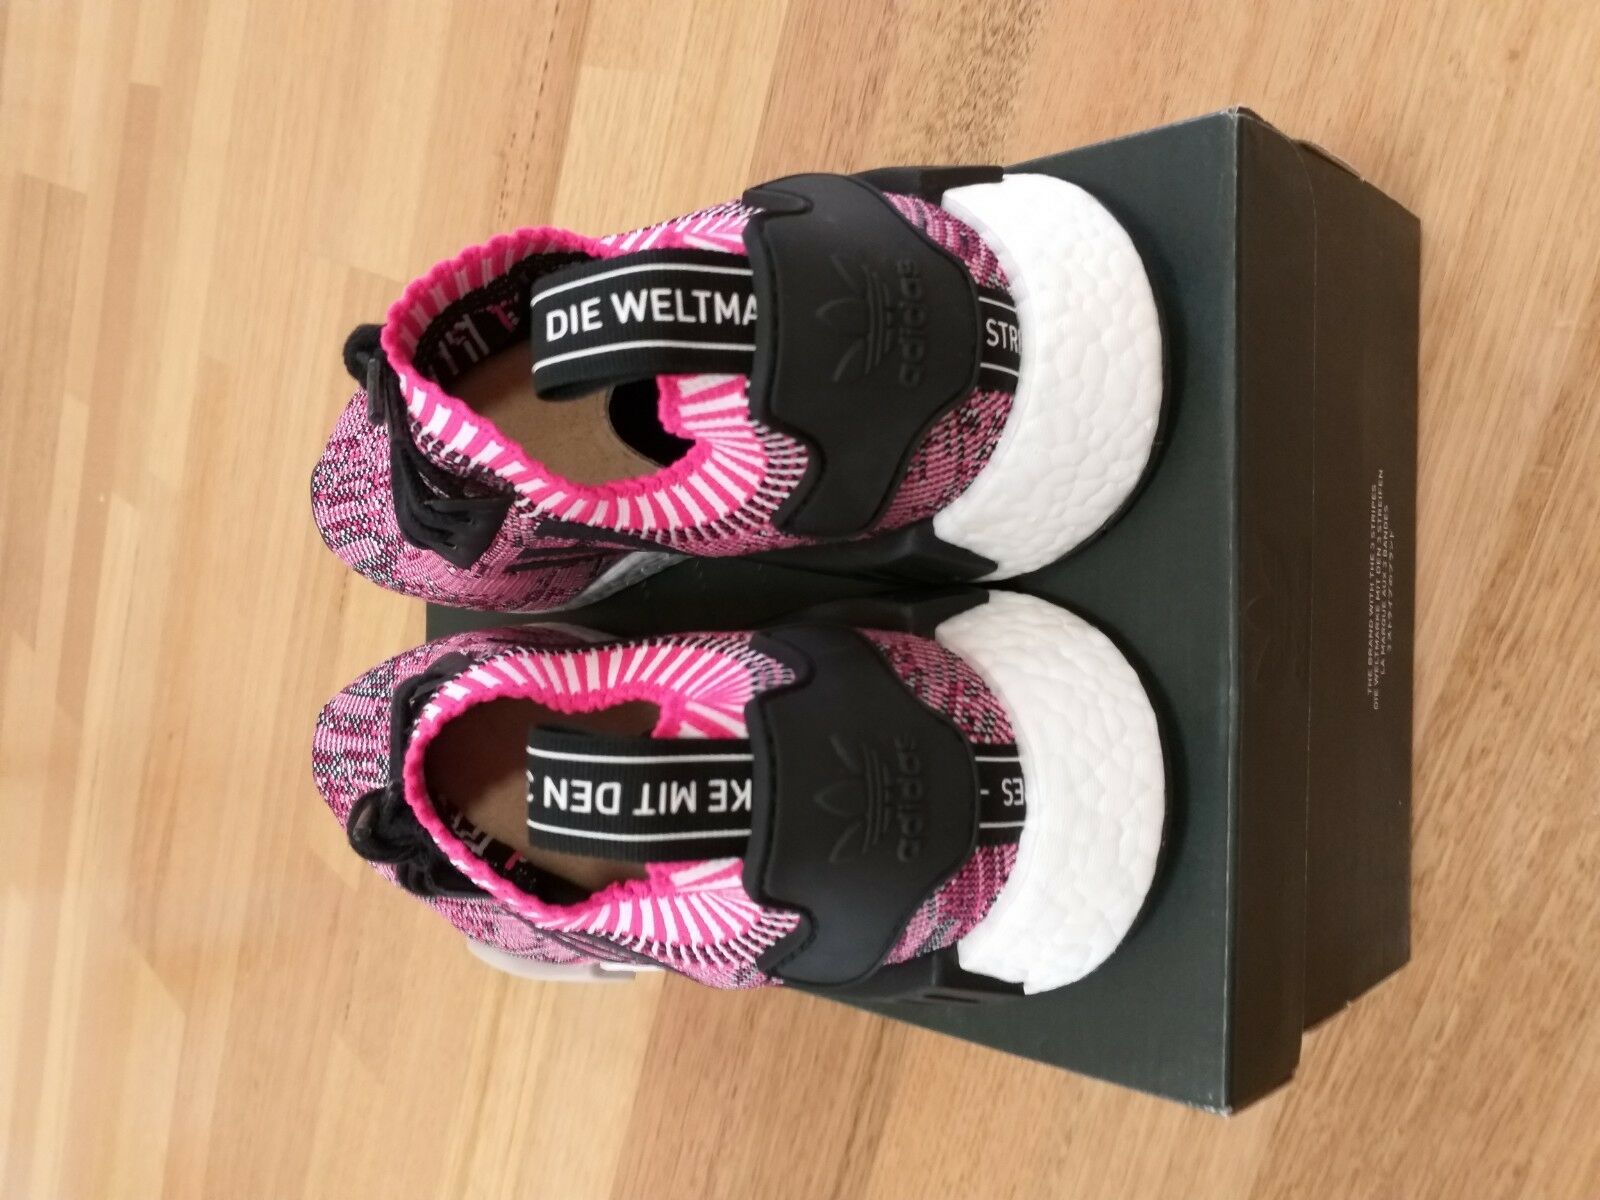 Adidas NMD R1 PK pink size 9 W DS prime knit sneaker